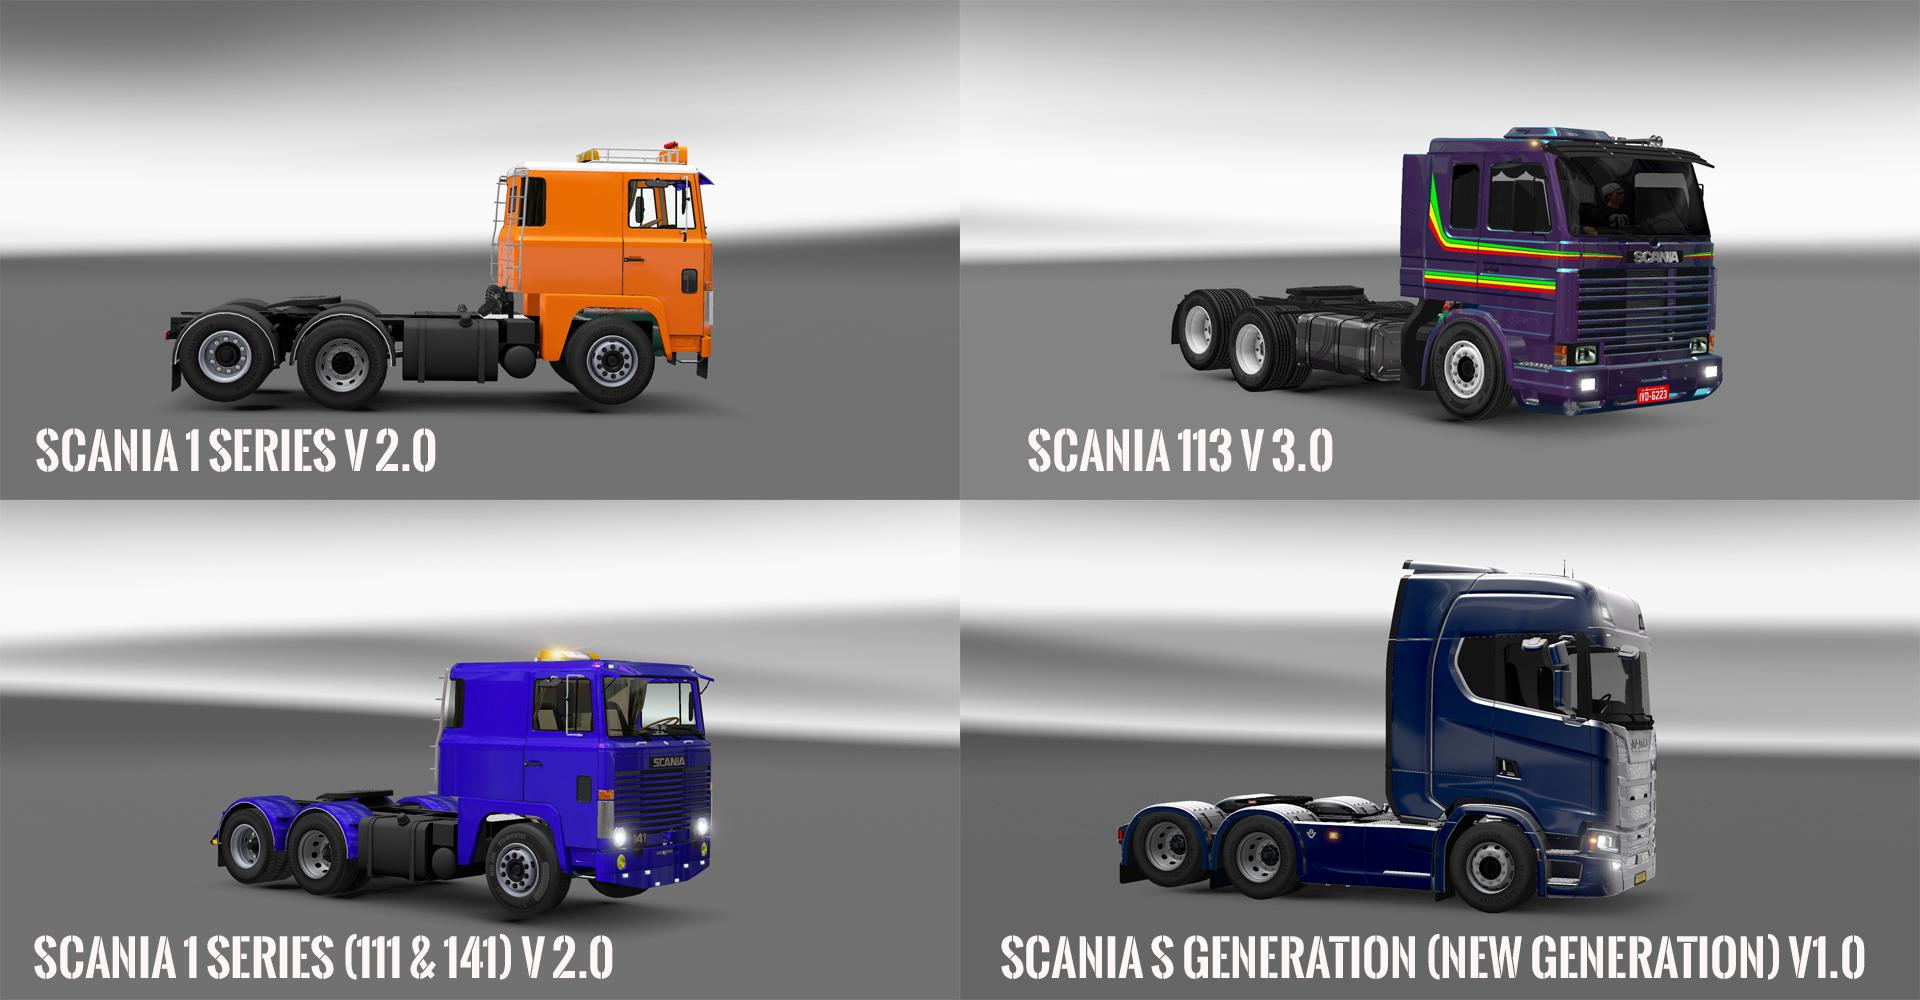 PACK V10.5 COMPT. TRUCKS WITH POWERFULL V10.4